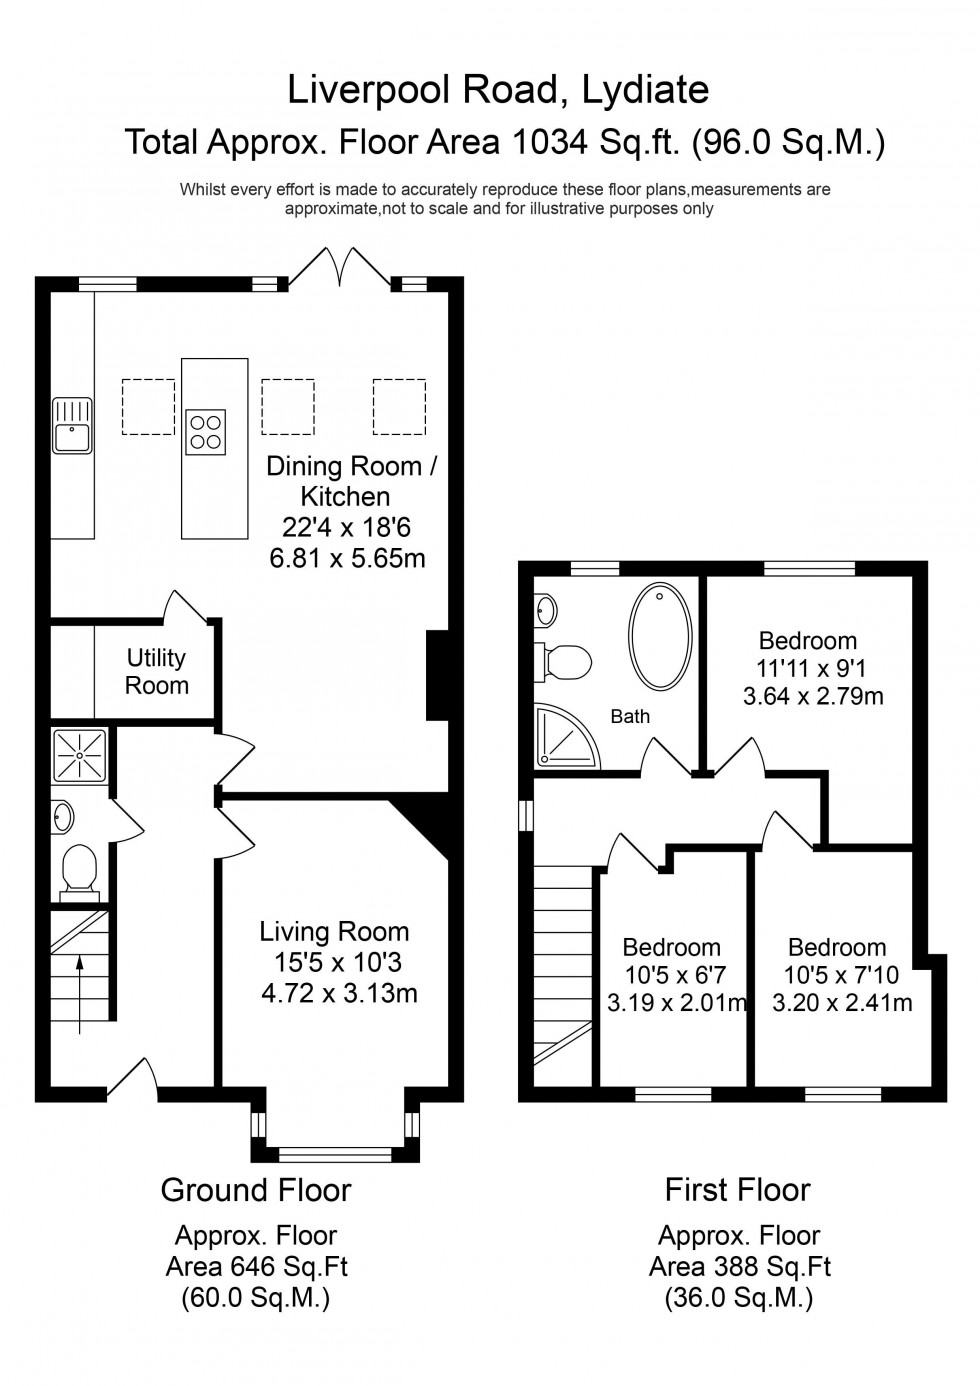 Floorplan for Liverpool Road, Lydiate